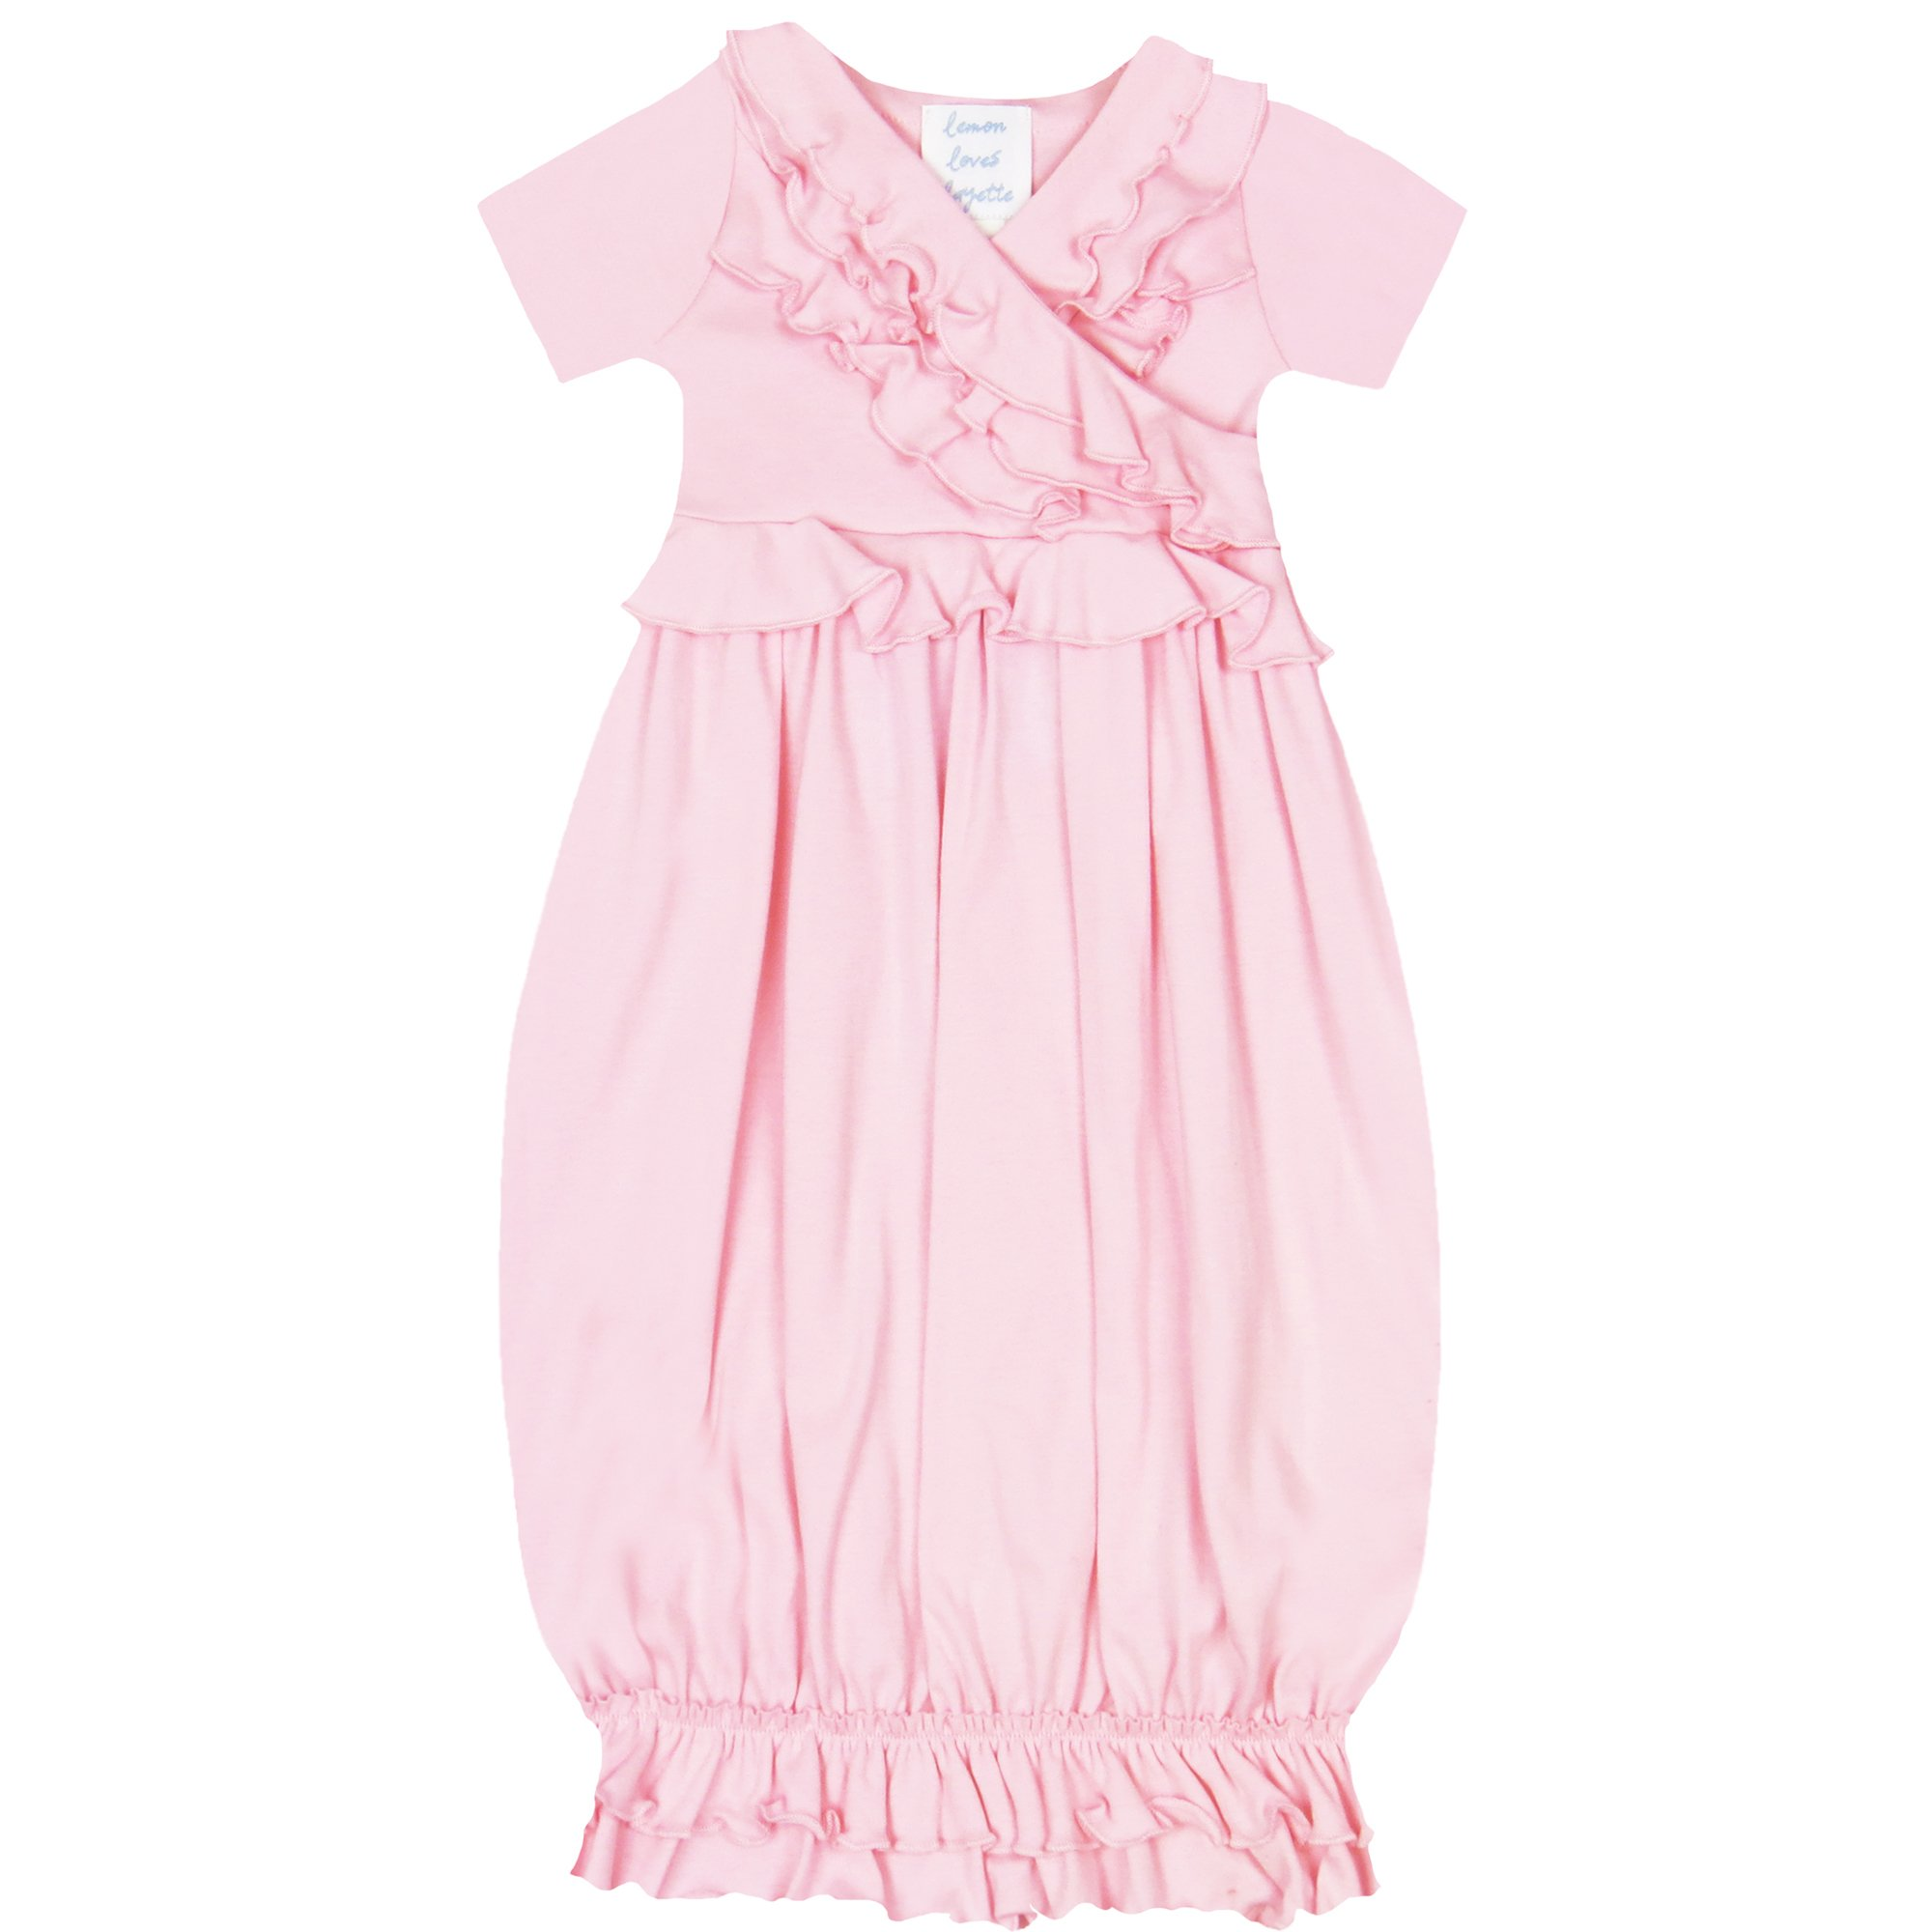 Take Me Home Lemon Loves Layette Pink Baby Gown